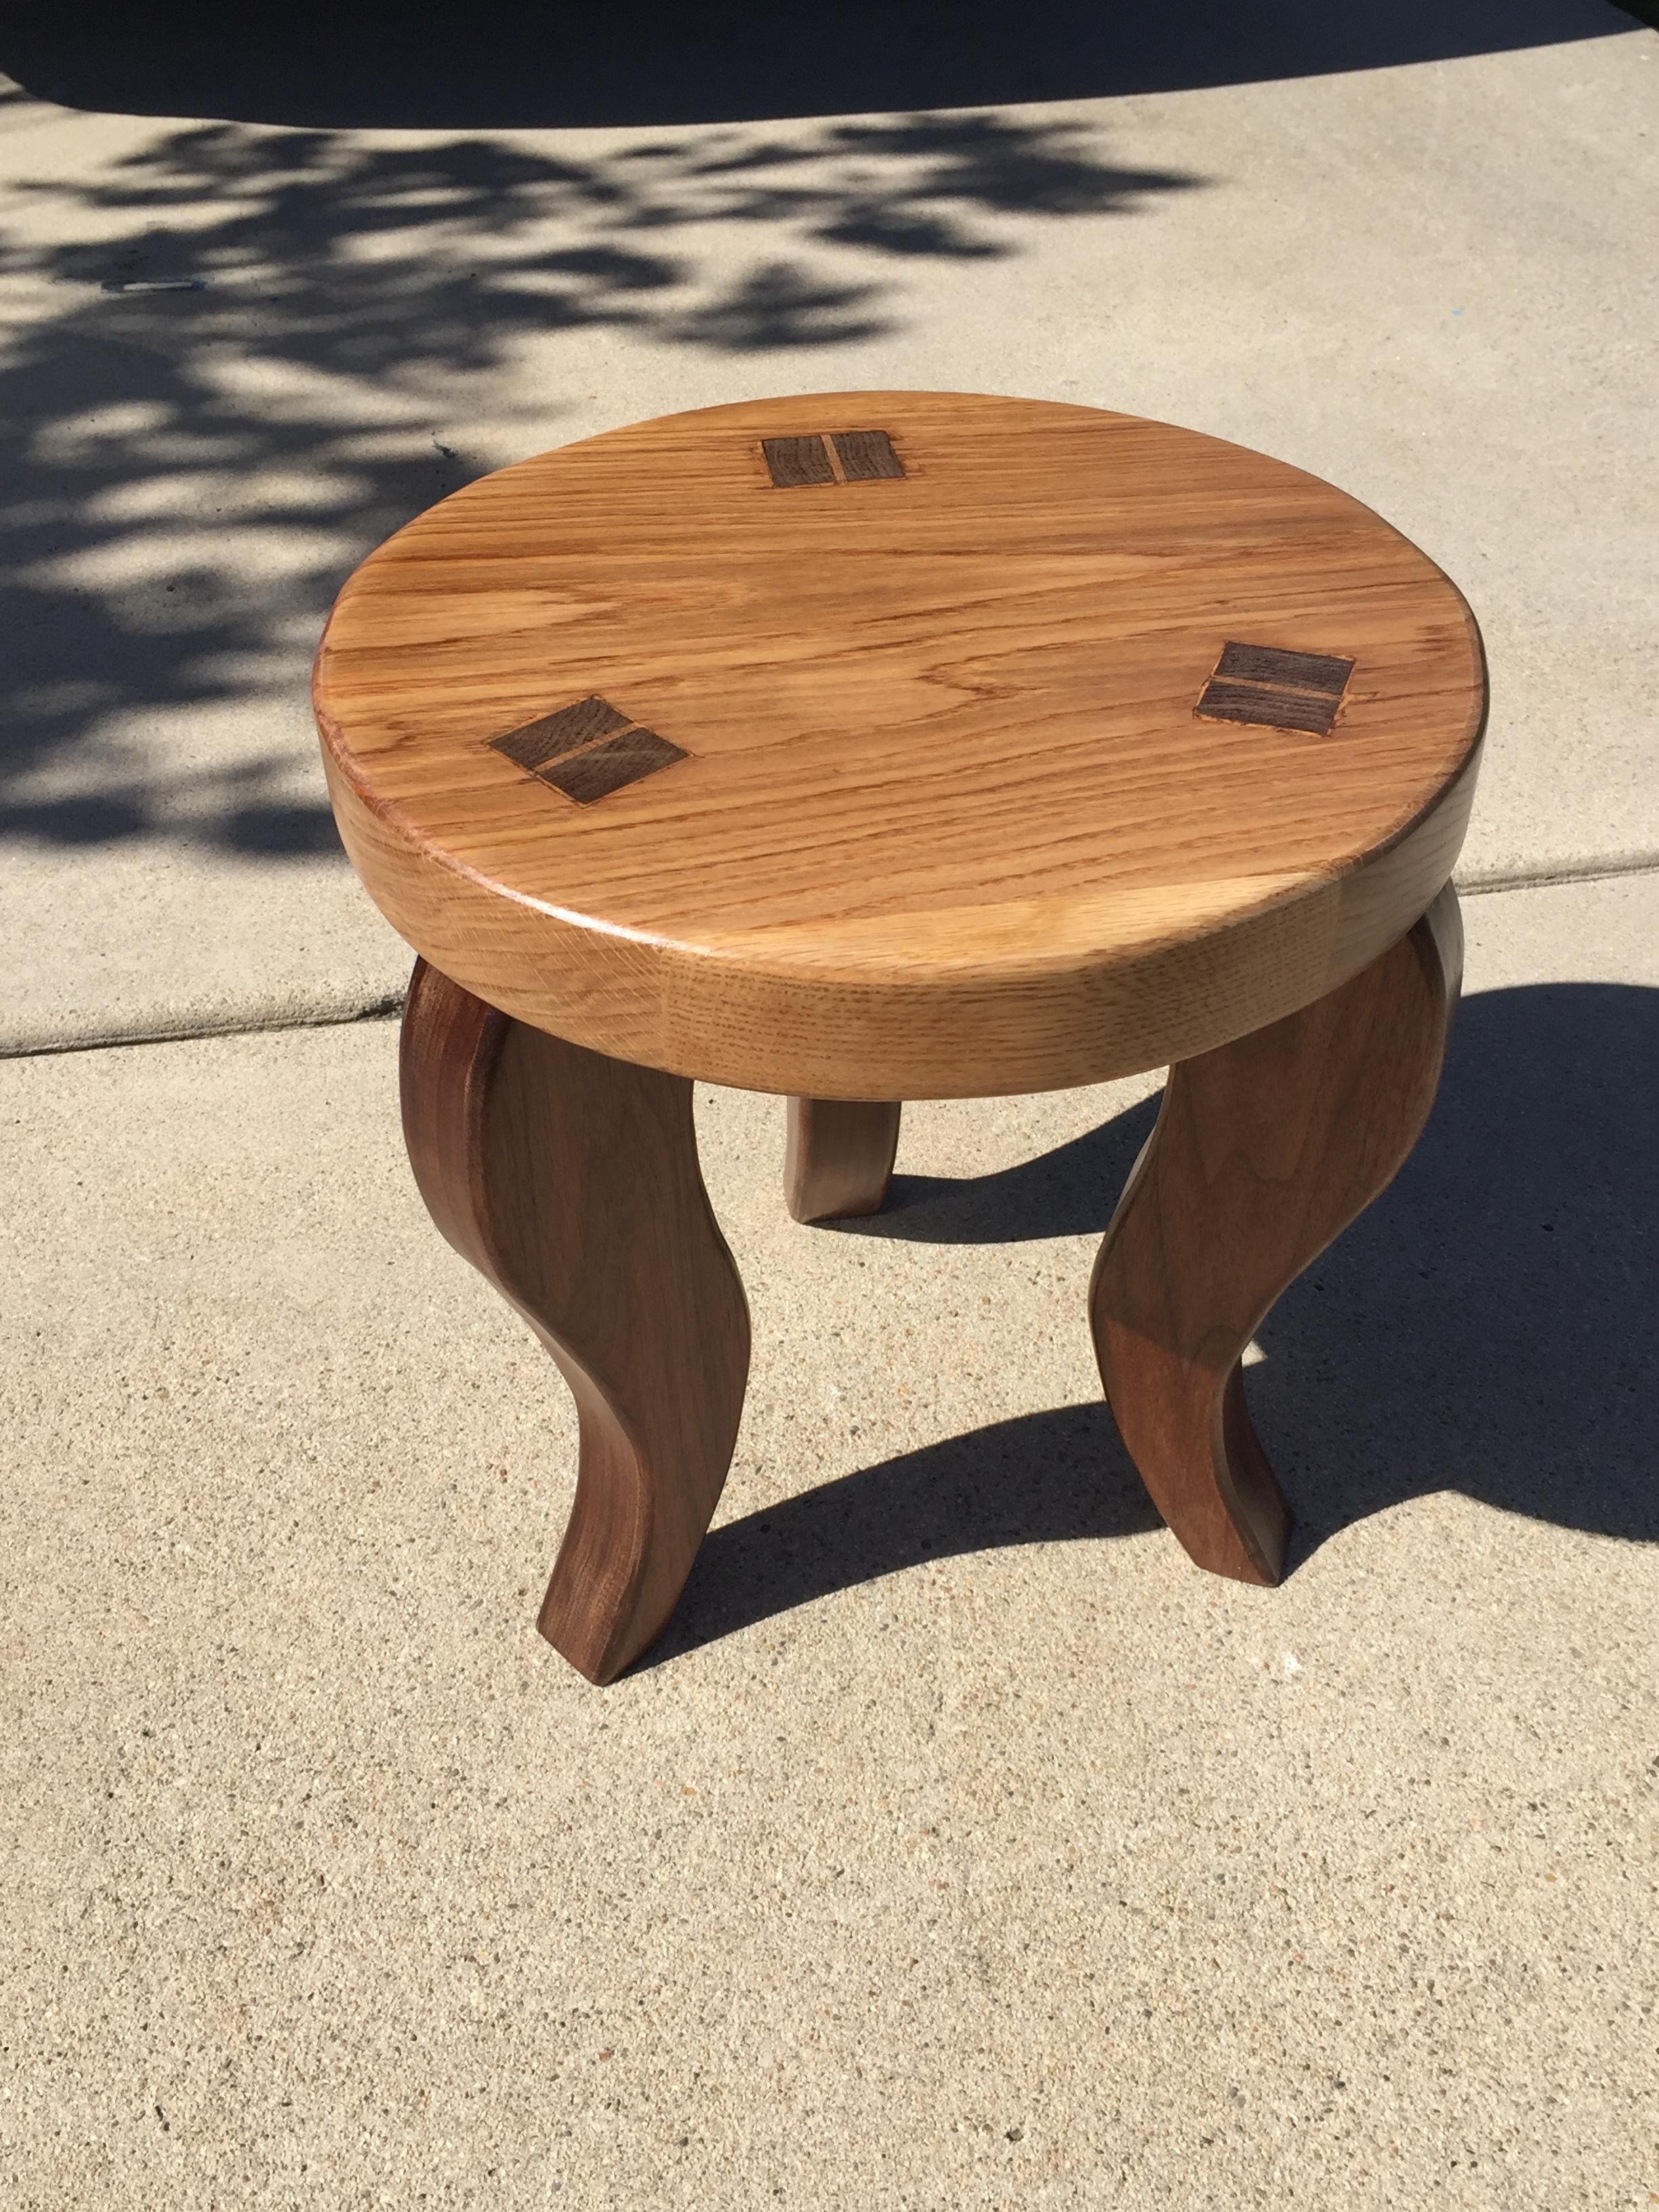 built a stool with my grandpa from nick offerman's wood